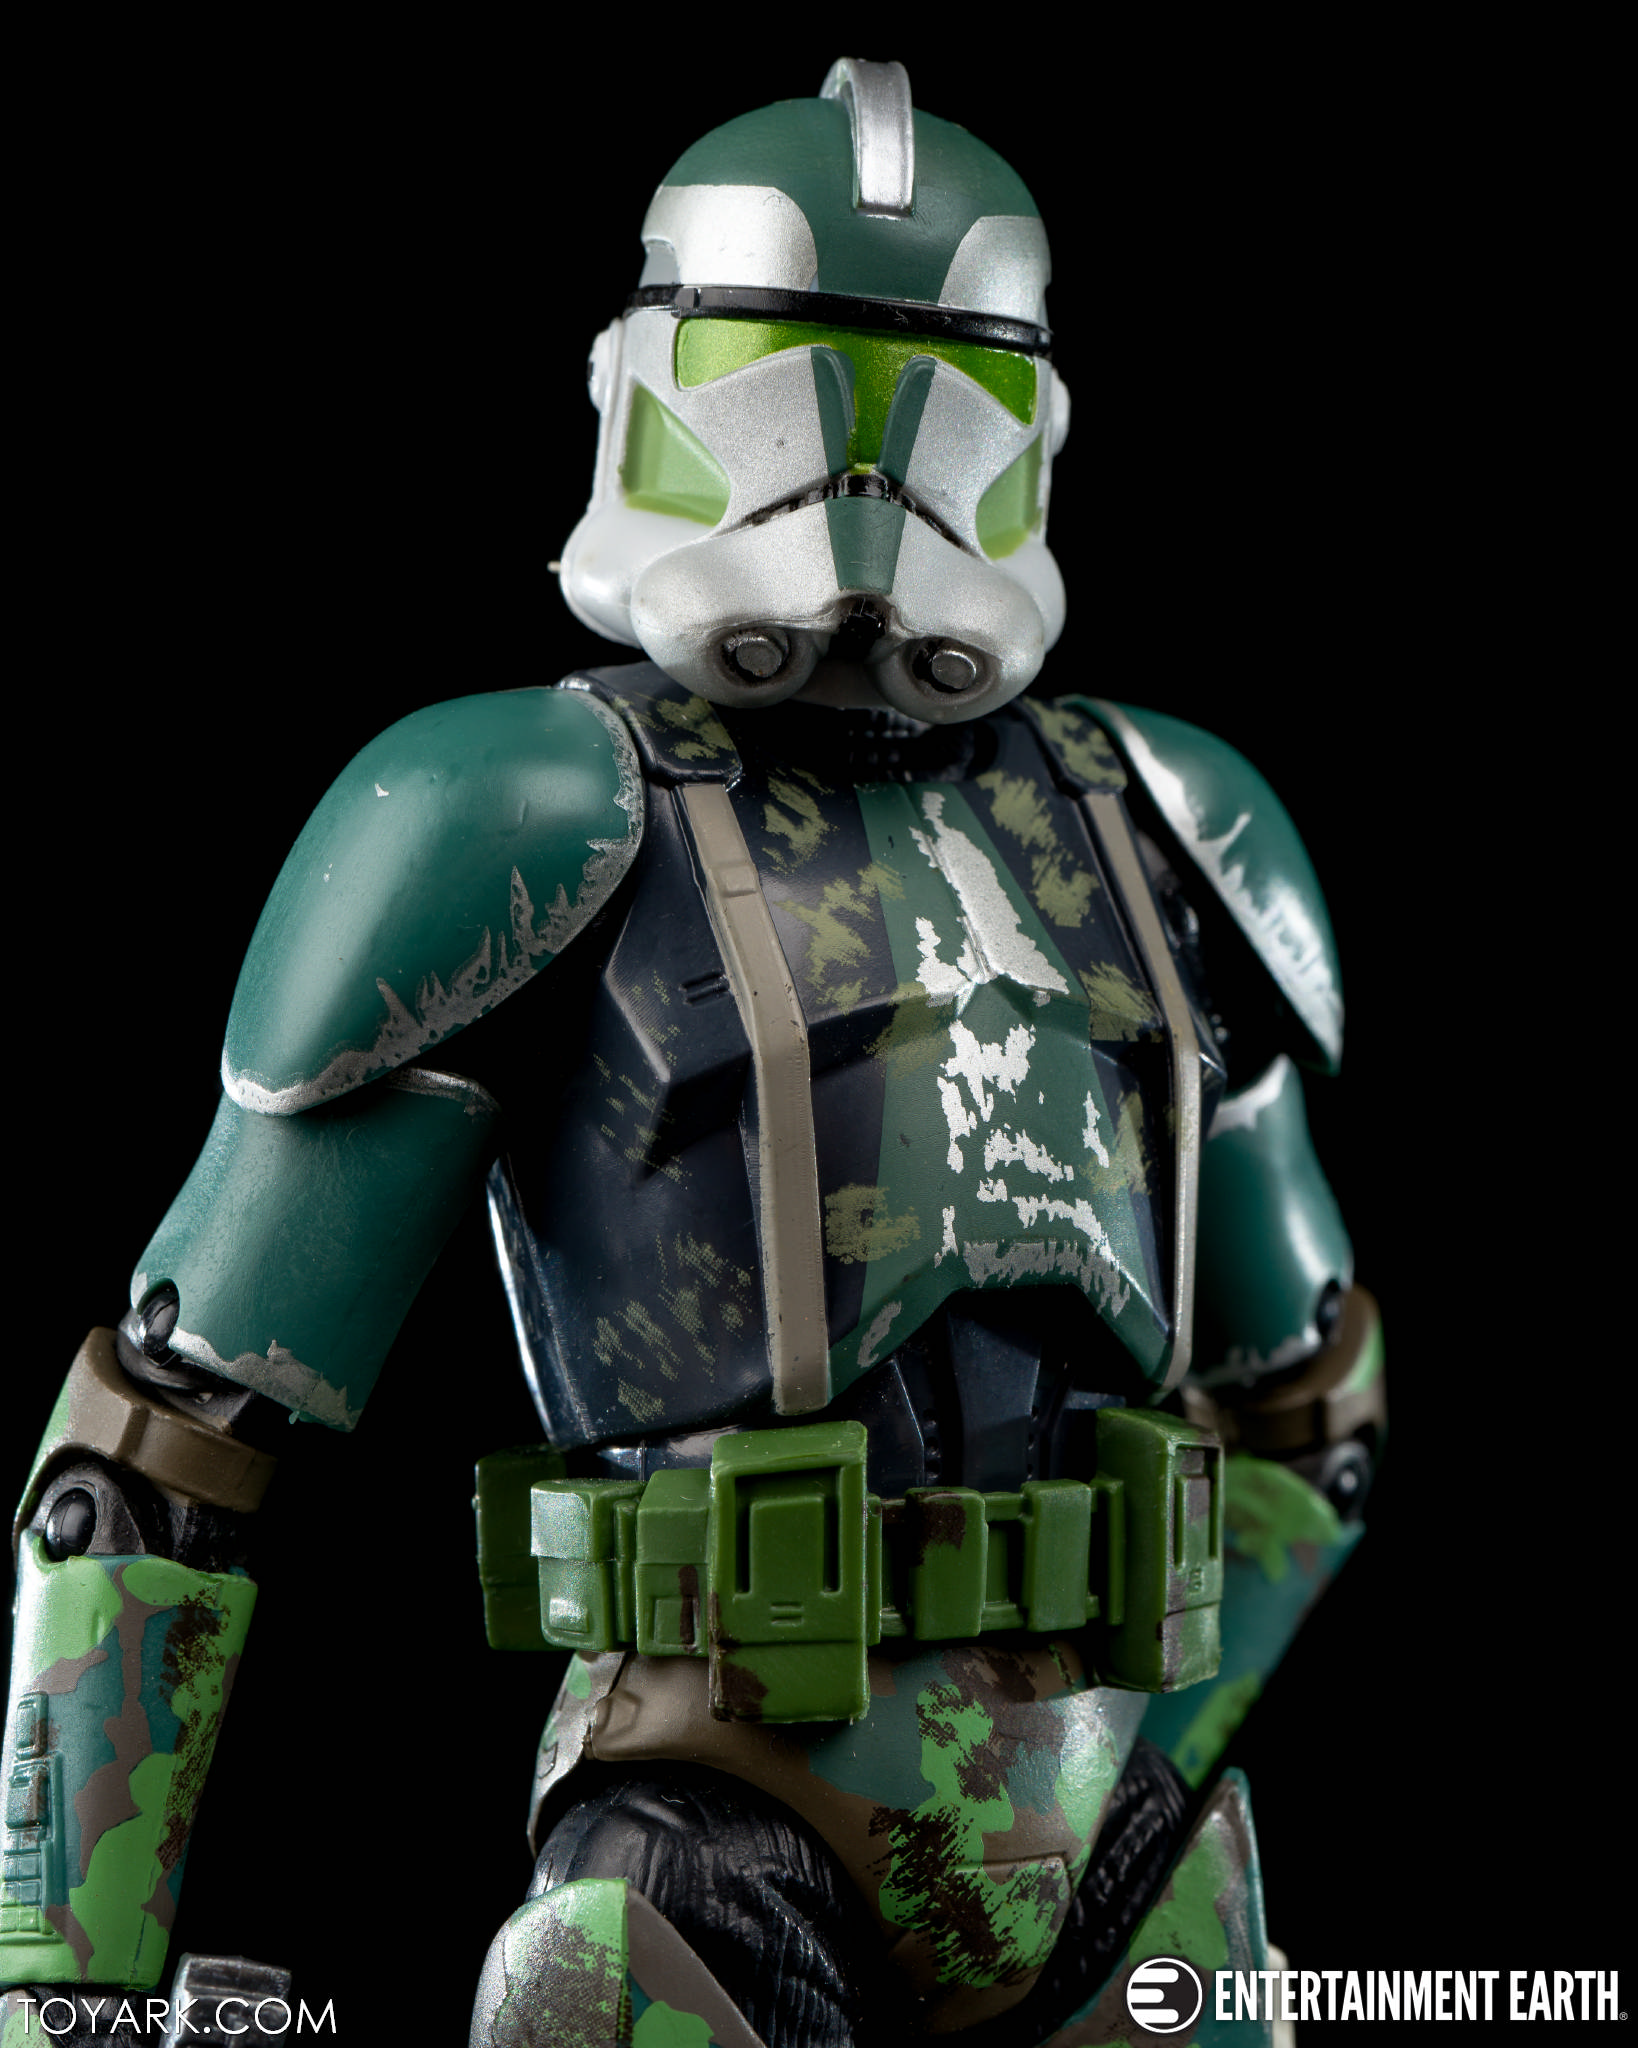 Star Wars Black Series Commander Gree Photo Shoot - The